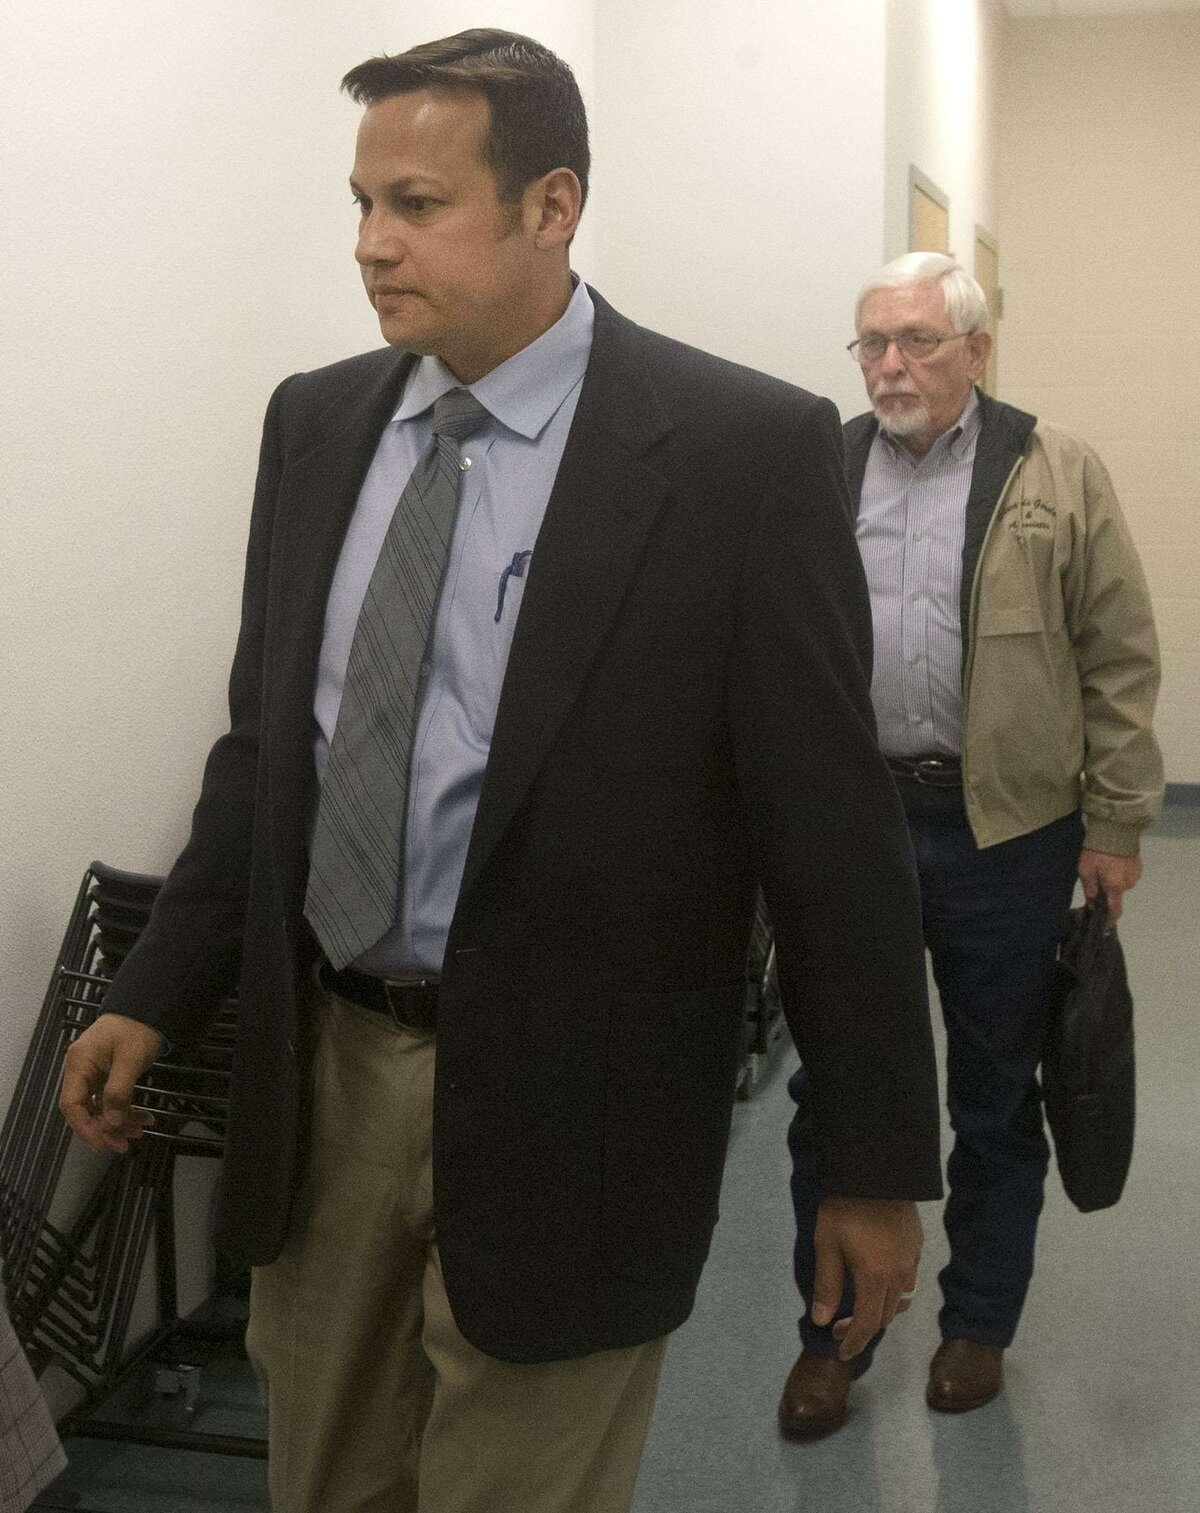 Former San Antonio attorney Mark Benavides (foreground) walks into court in Floresville in Wilson County on Wednesday. Benavides is accused of having sex with clients in exchange for legal services.